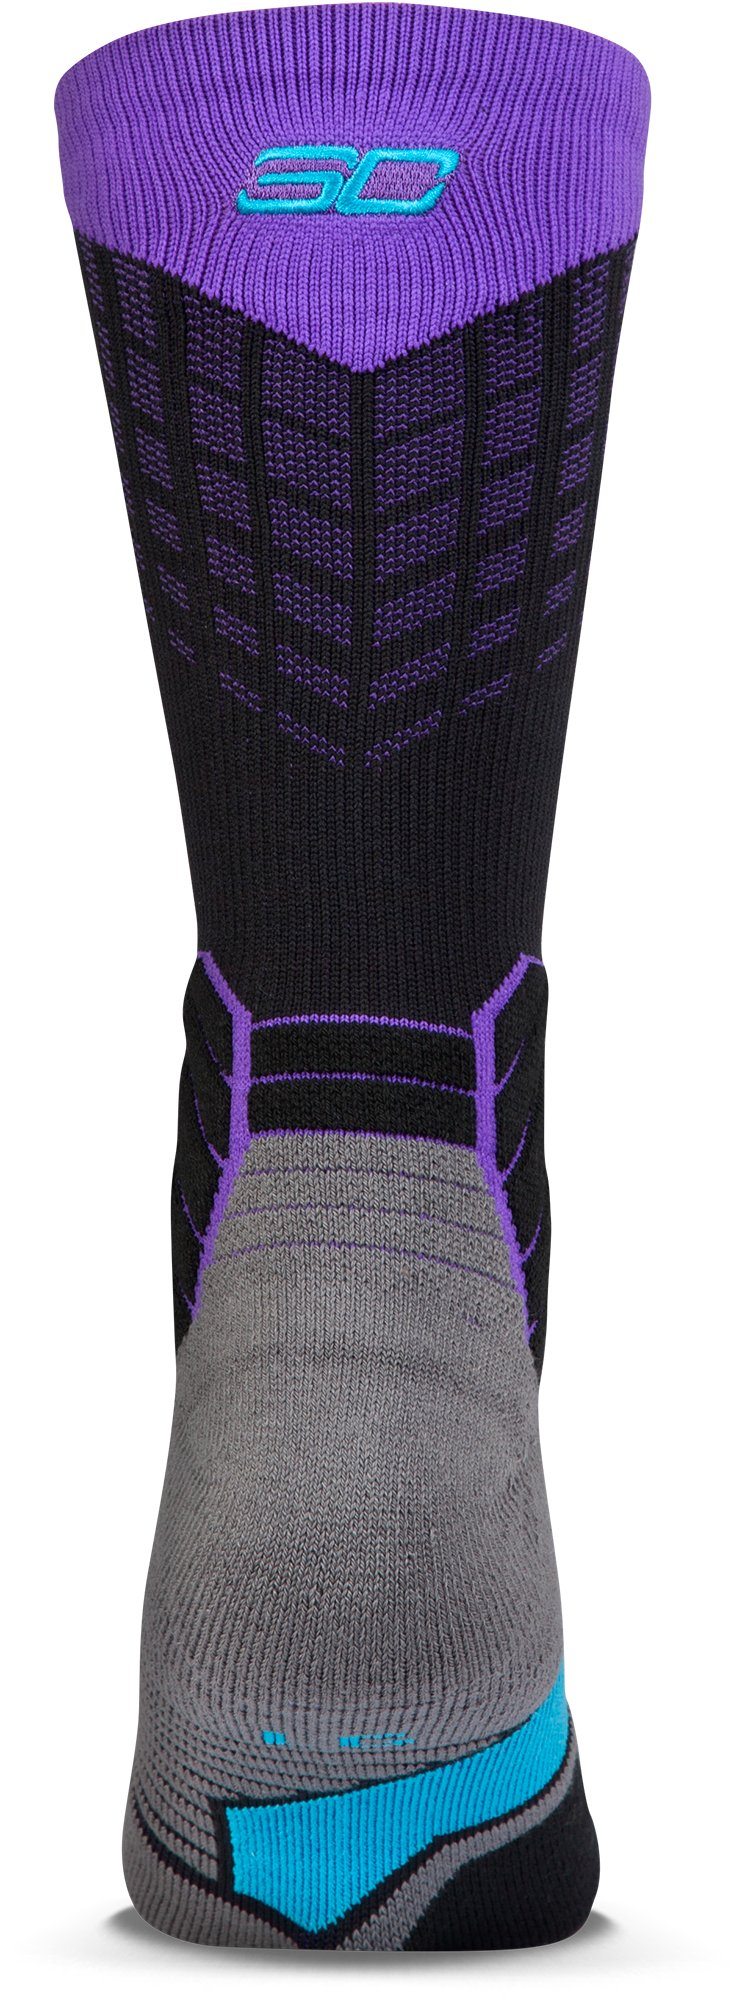 Men's SC30 Drive Crew Socks, Black